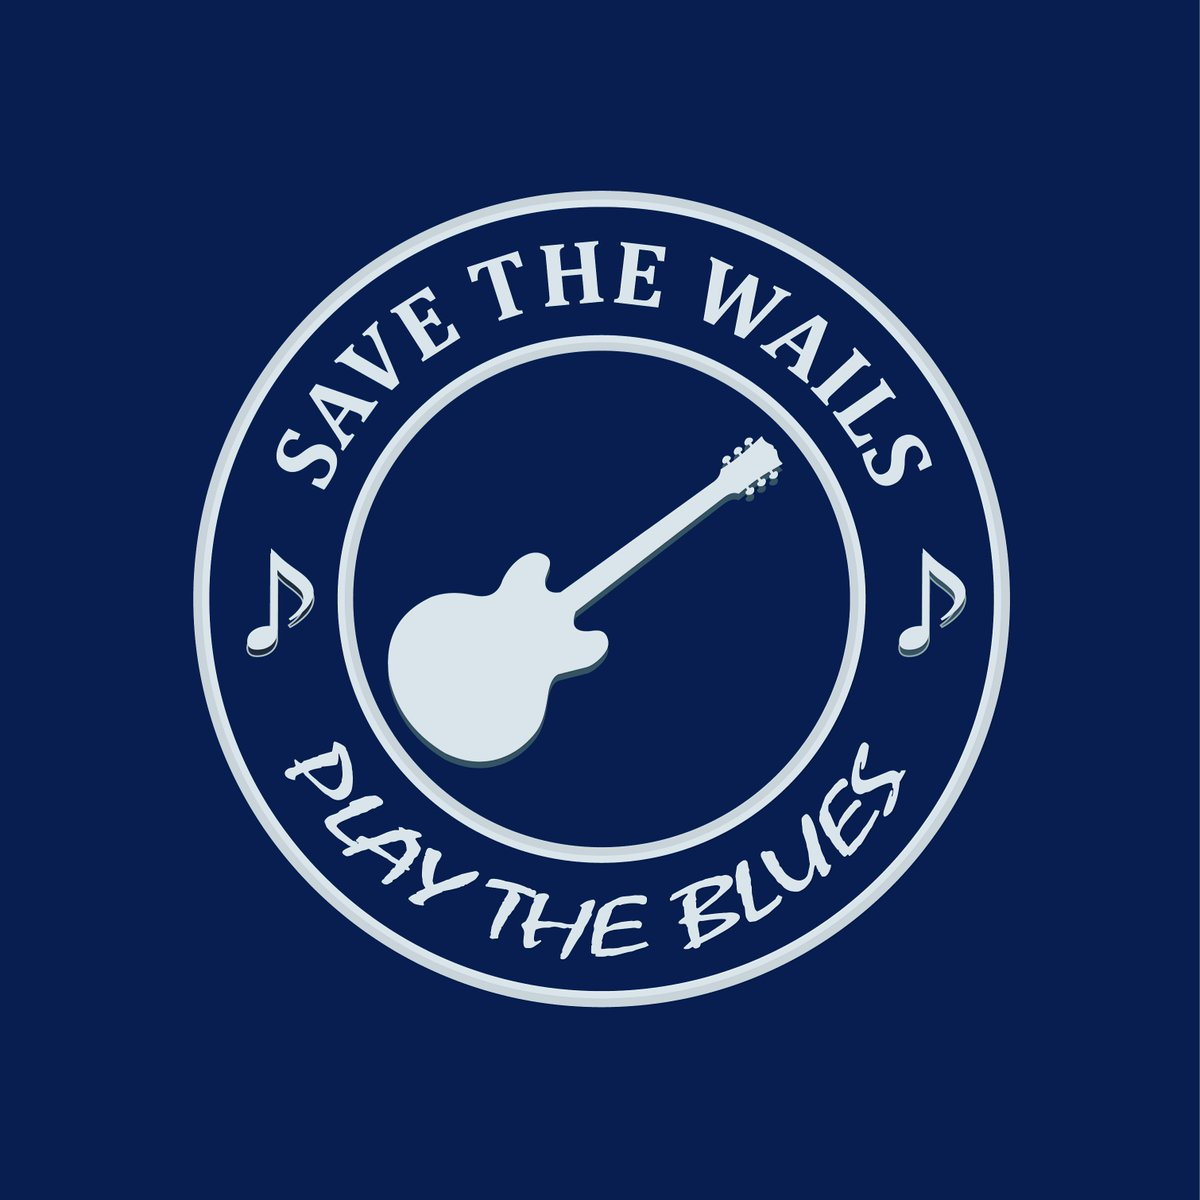 Save the Wails - Play the Blues ! Free Shipping &amp; 10% to @autismspeaks #guitar #music #musicians #autismawareness   https:// teespring.com/save-the-wails ?pr=SHIP2ME &nbsp; … <br>http://pic.twitter.com/bj7N1Ynl8J